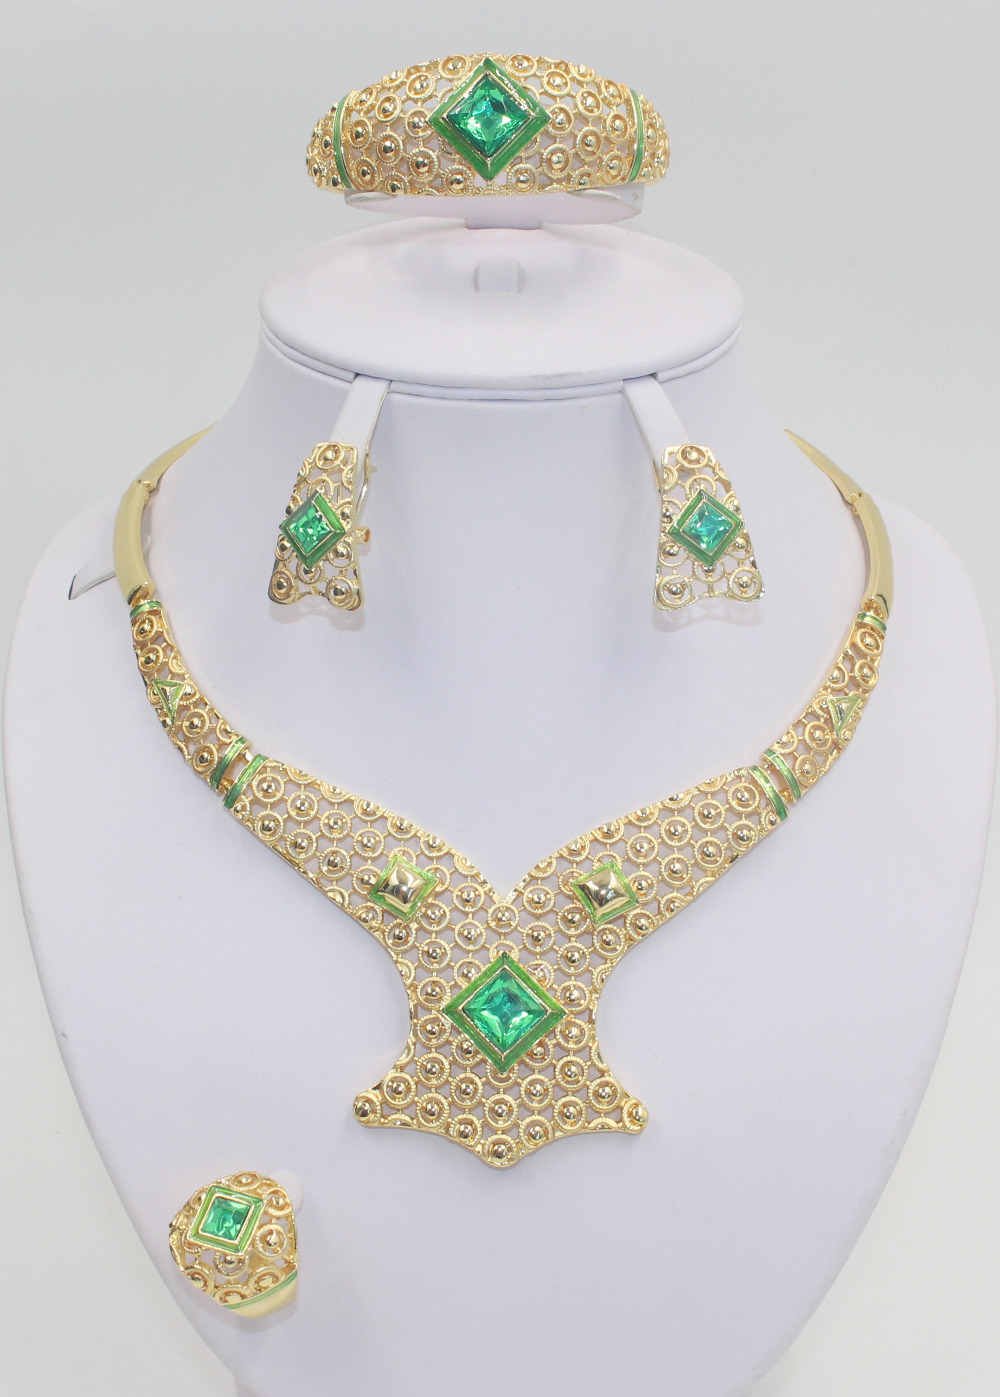 2015 New African beads bridal costume jewelry set fashion women party filled with 18K gold-plated green crystal jewelry sets(China (Mainland))